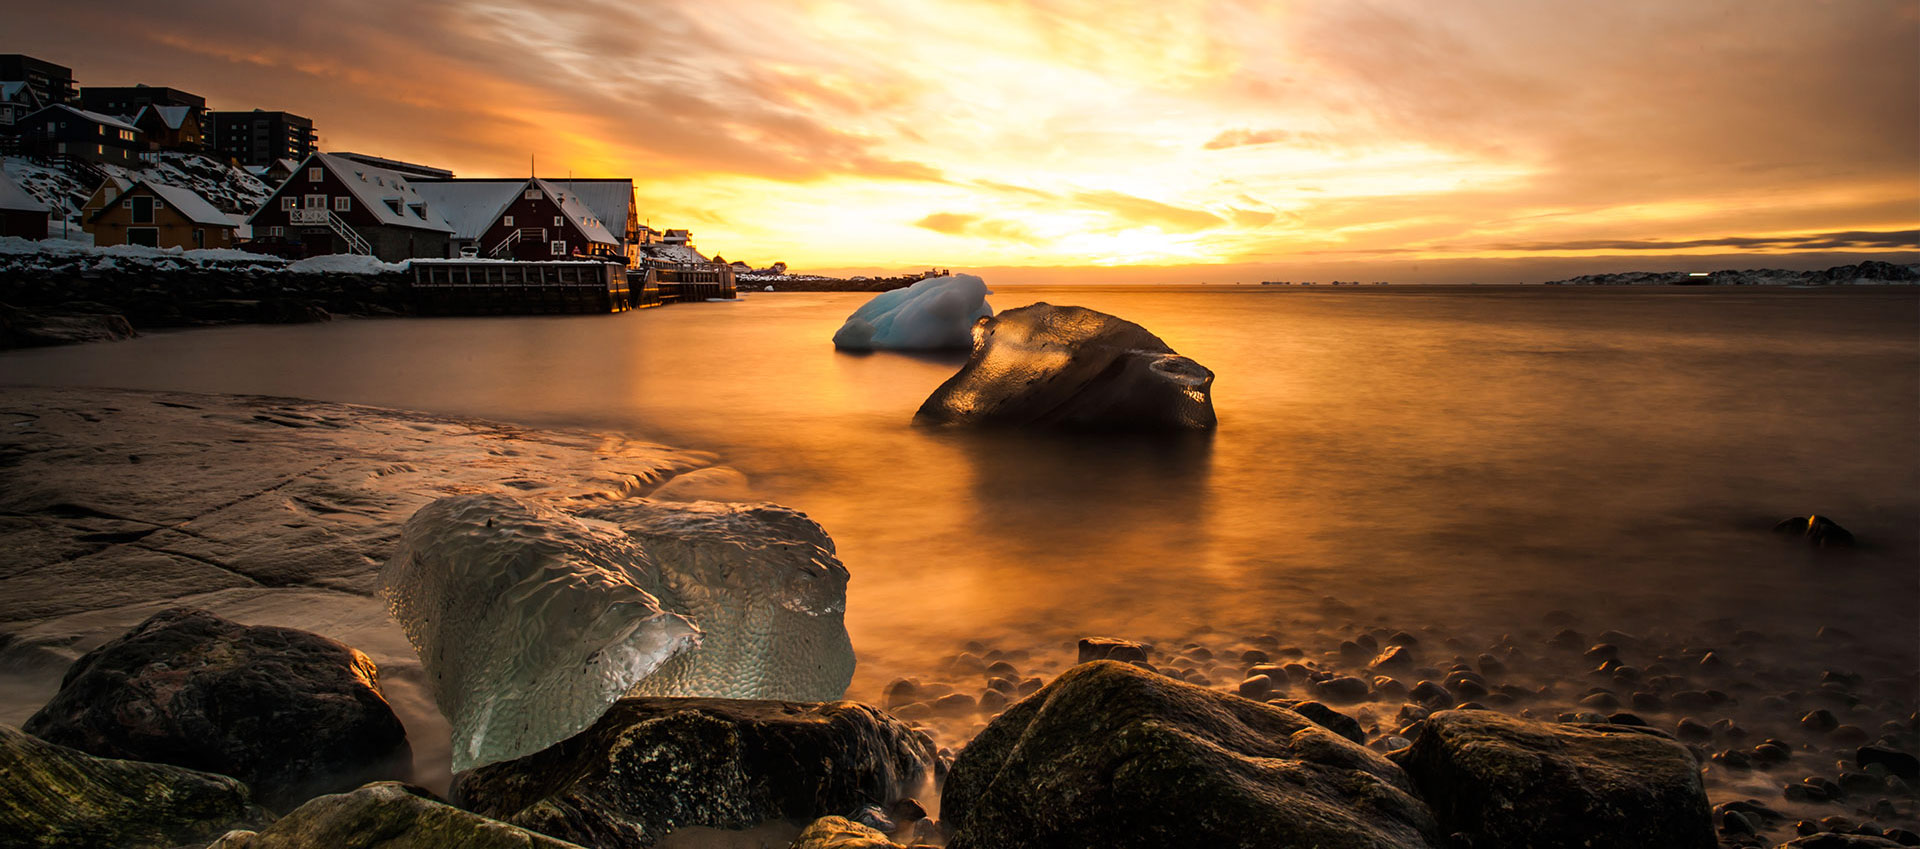 Sunset at the old colonial harbour in Nuuk, Greenland